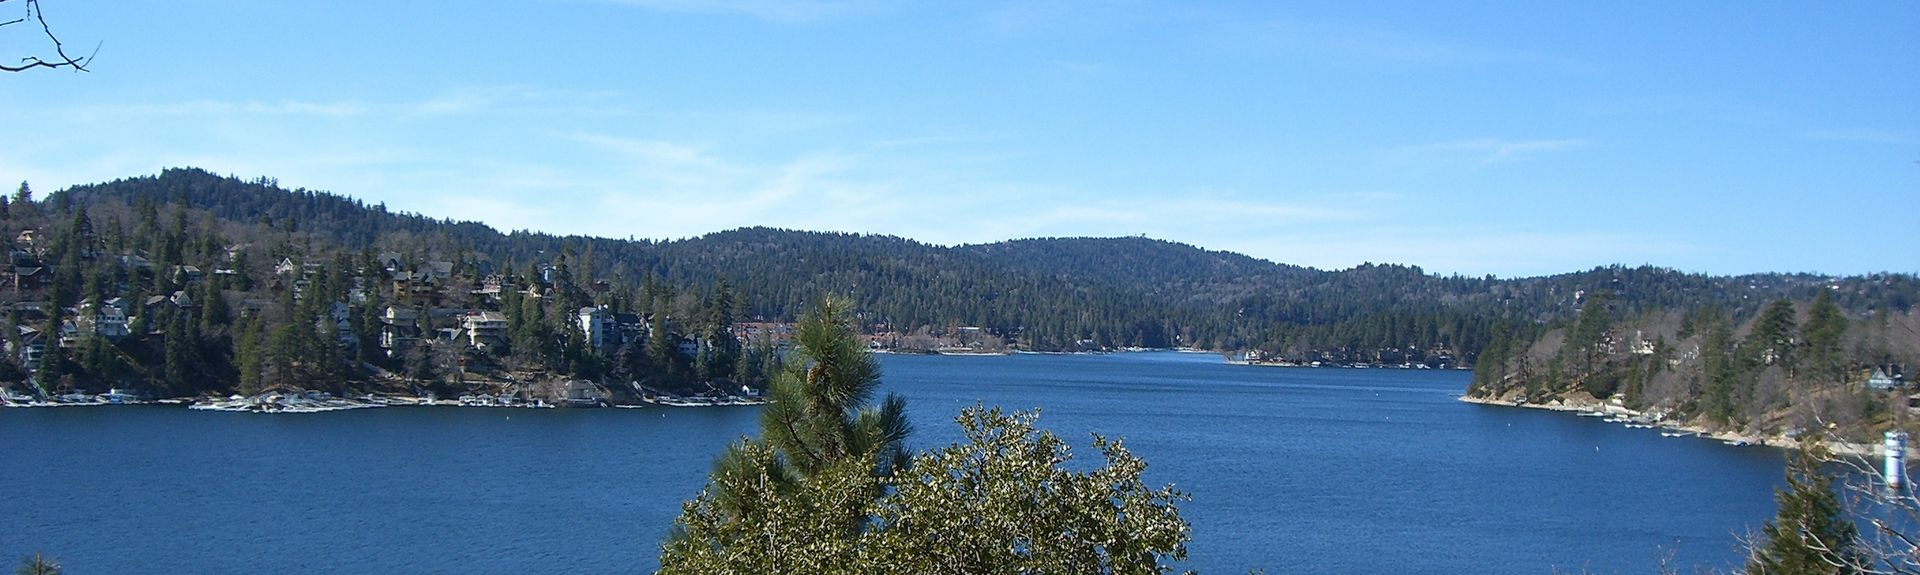 Arrowhead Villas, Lake Arrowhead, Califórnia, Estados Unidos